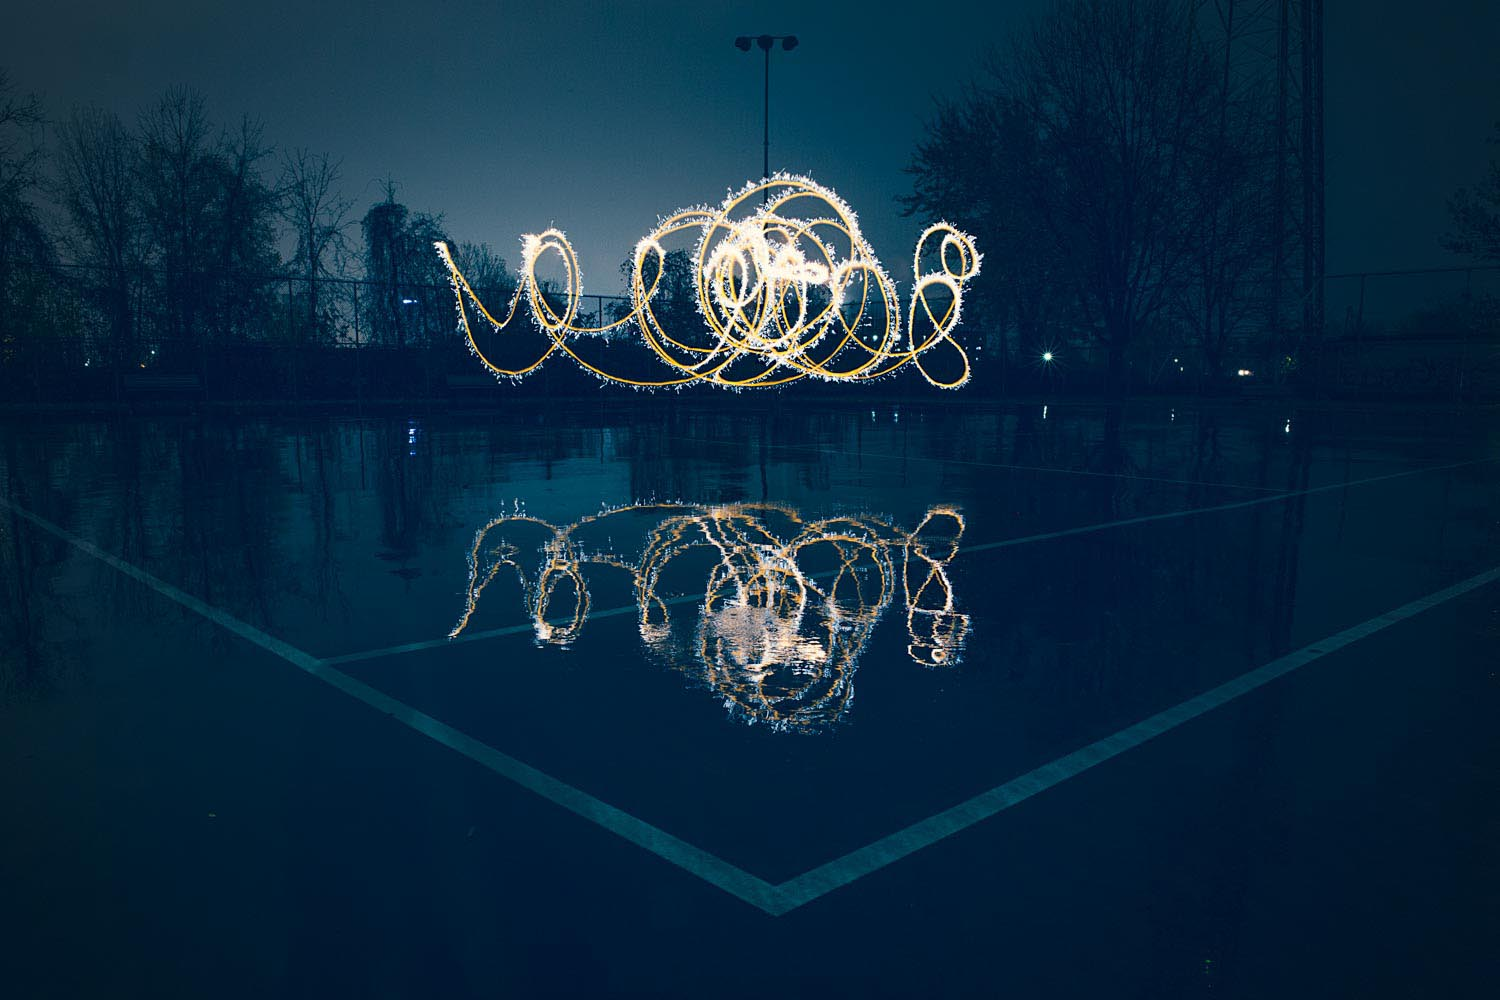 Light painting 6